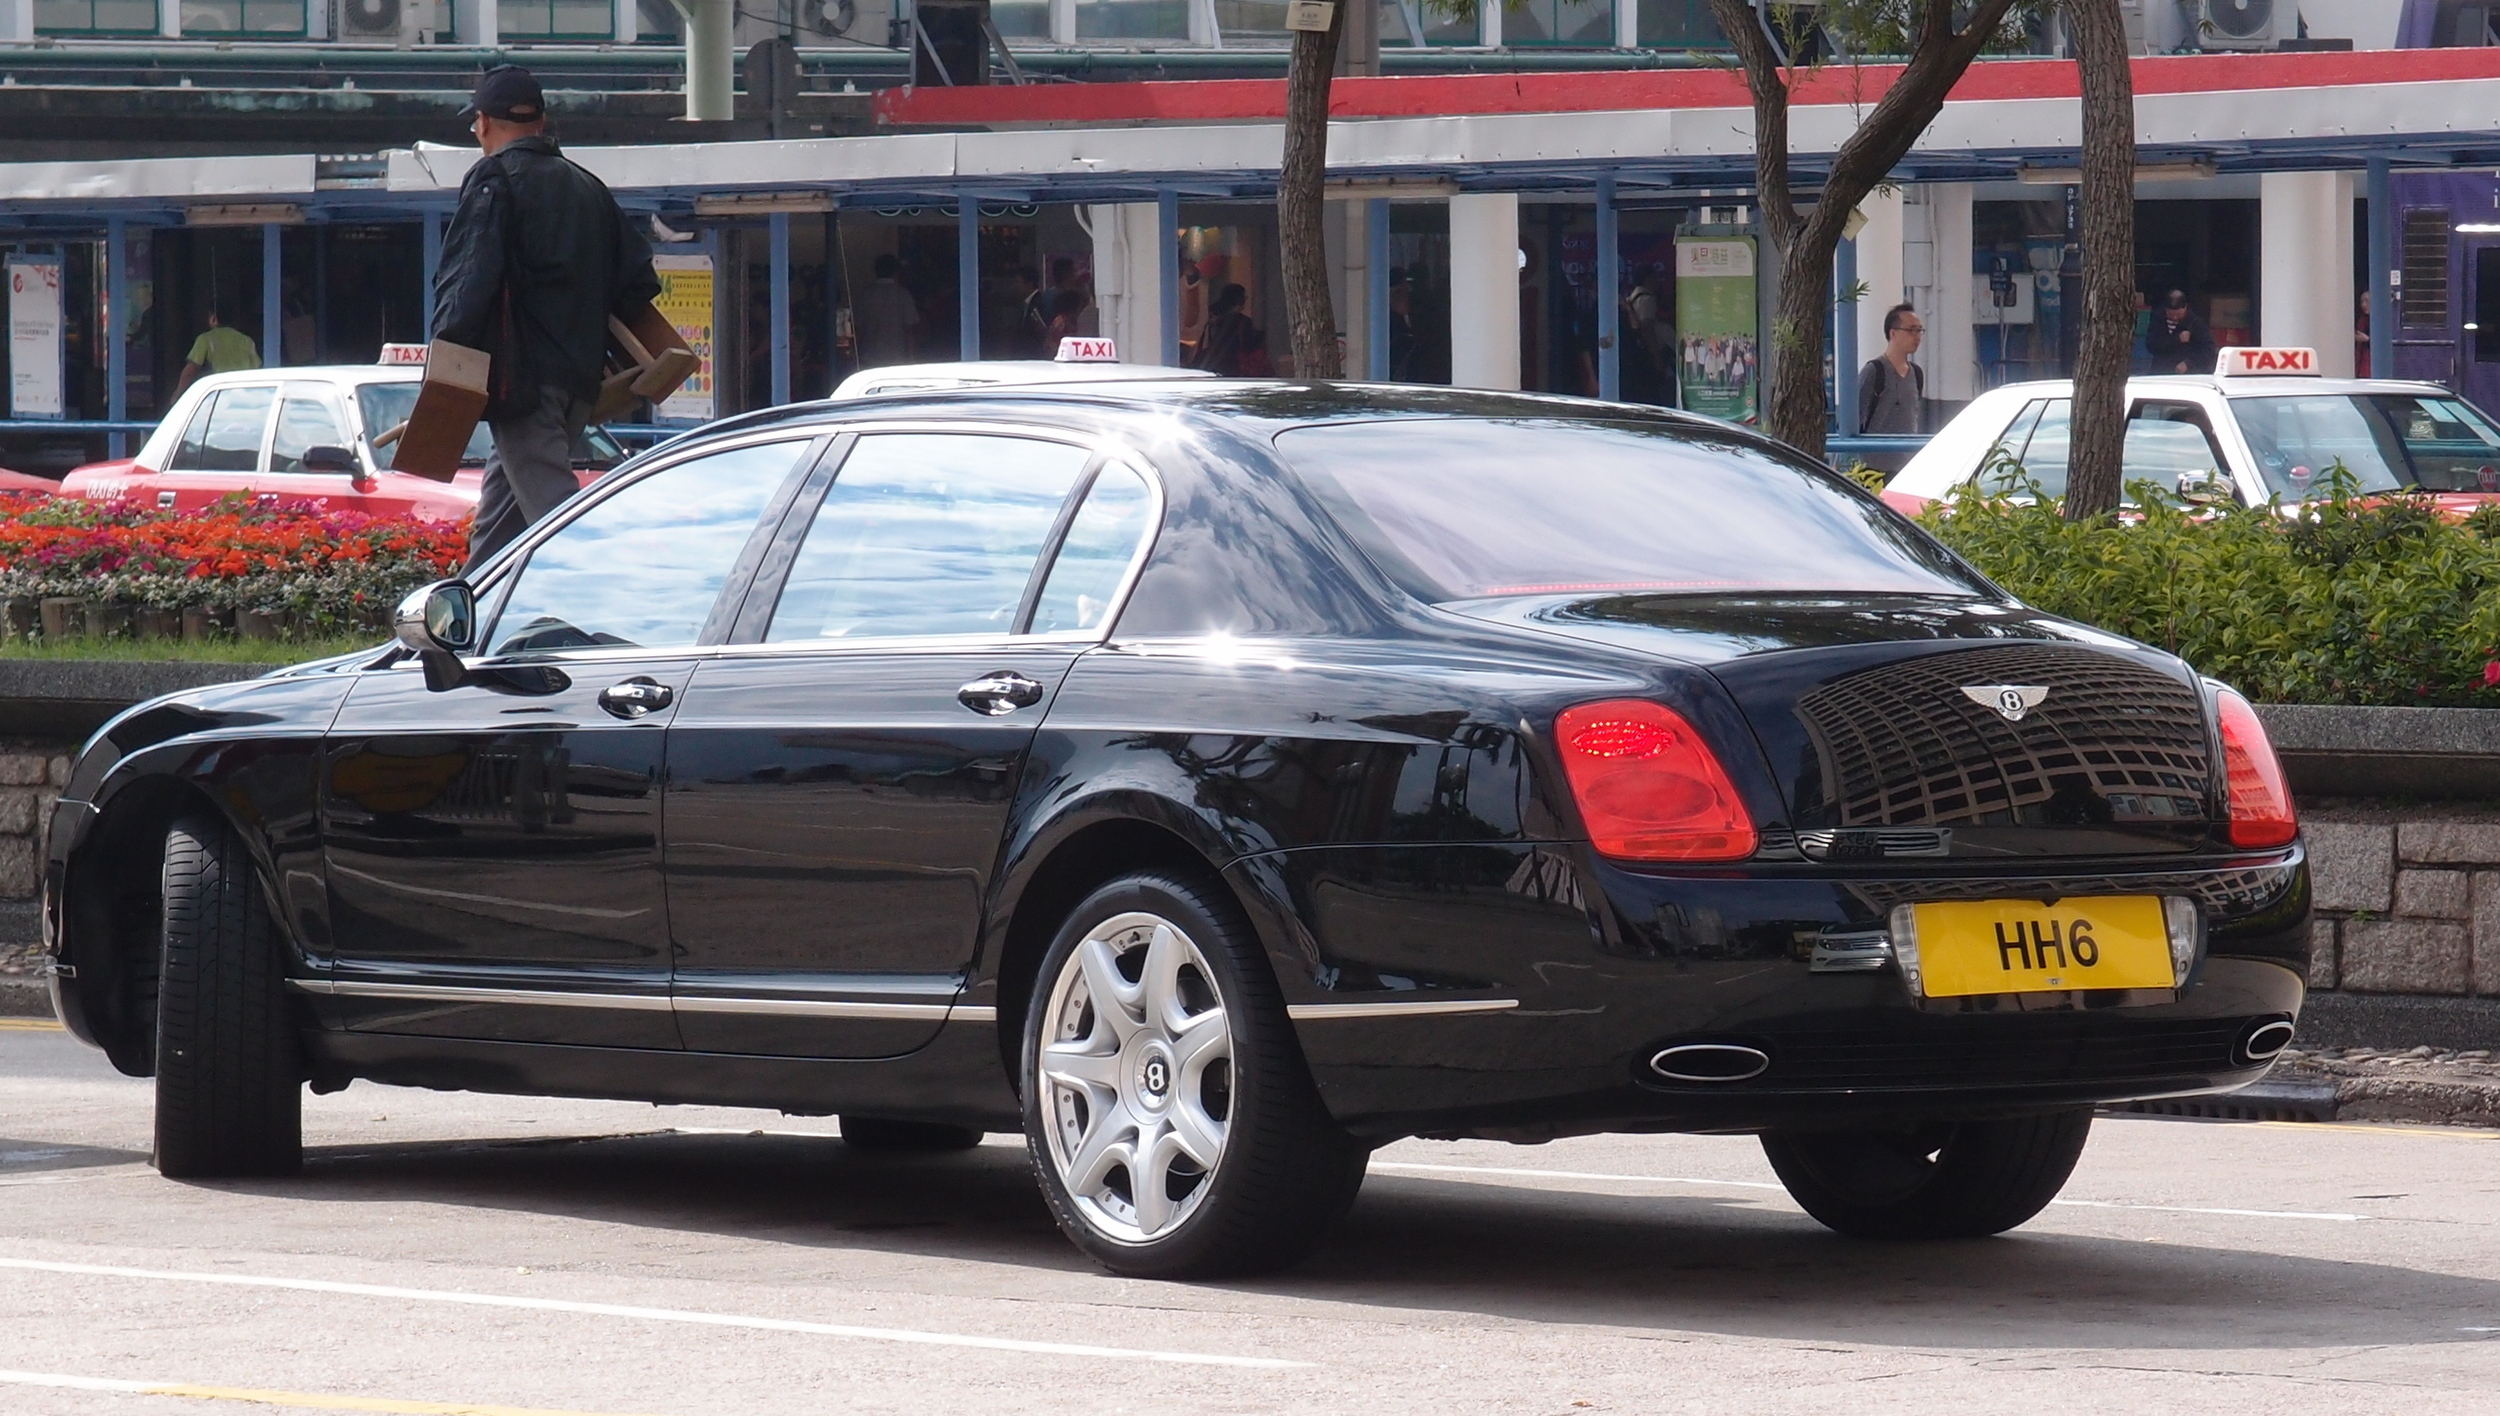 Bentley with great number plate